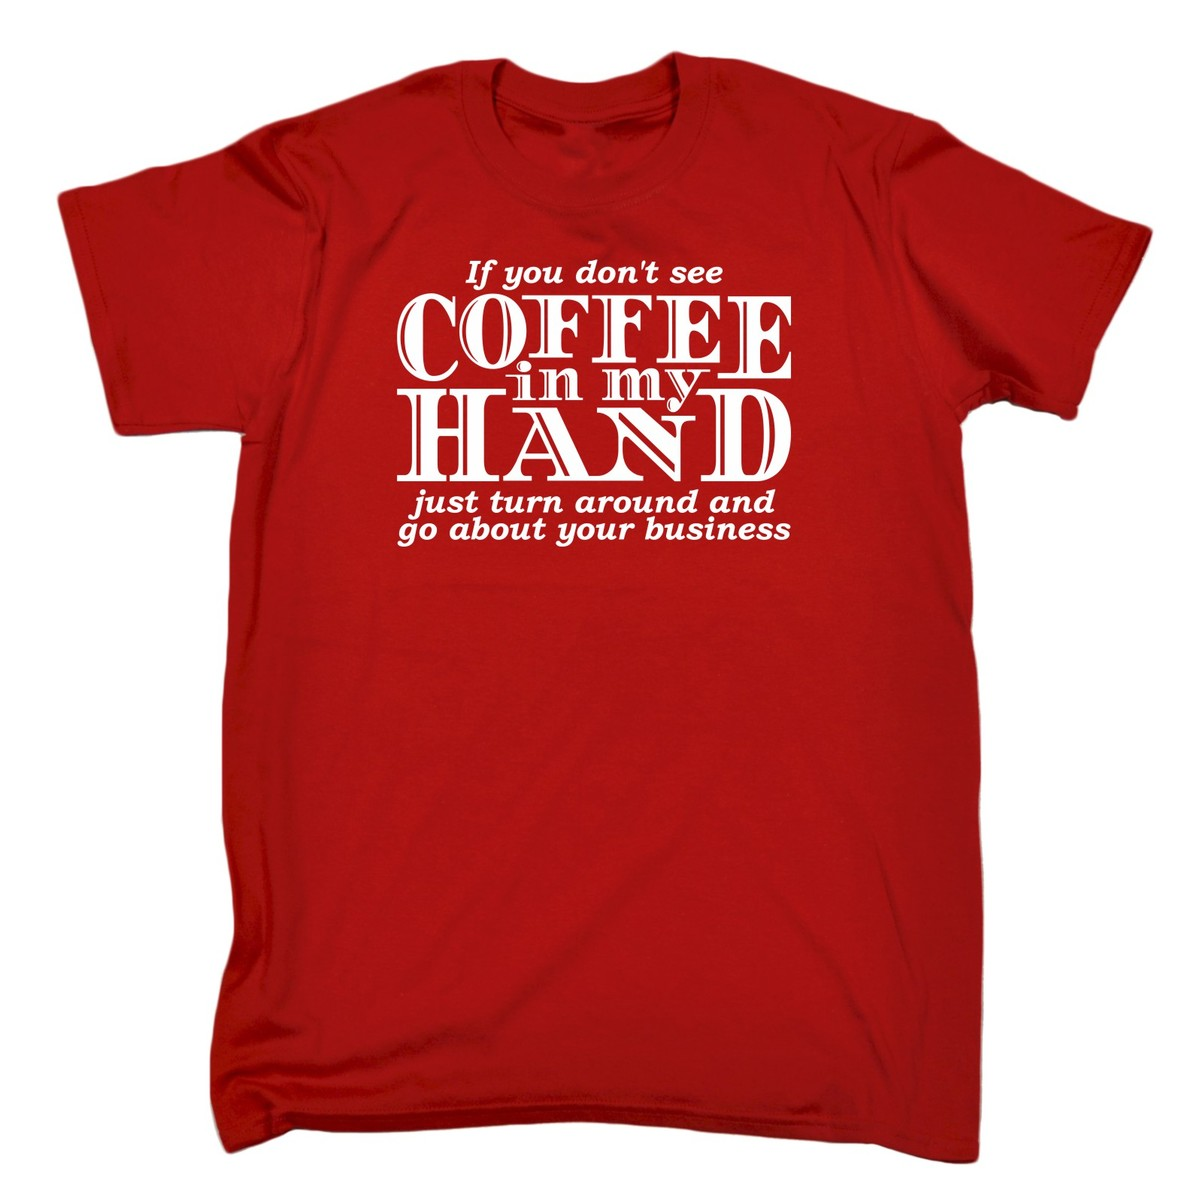 2018 Hot Sale If You Don 39 t See Coffee In My Hand Morning Joke Funny Humour T SHIRT Birthday Tee Shirt in T Shirts from Men 39 s Clothing